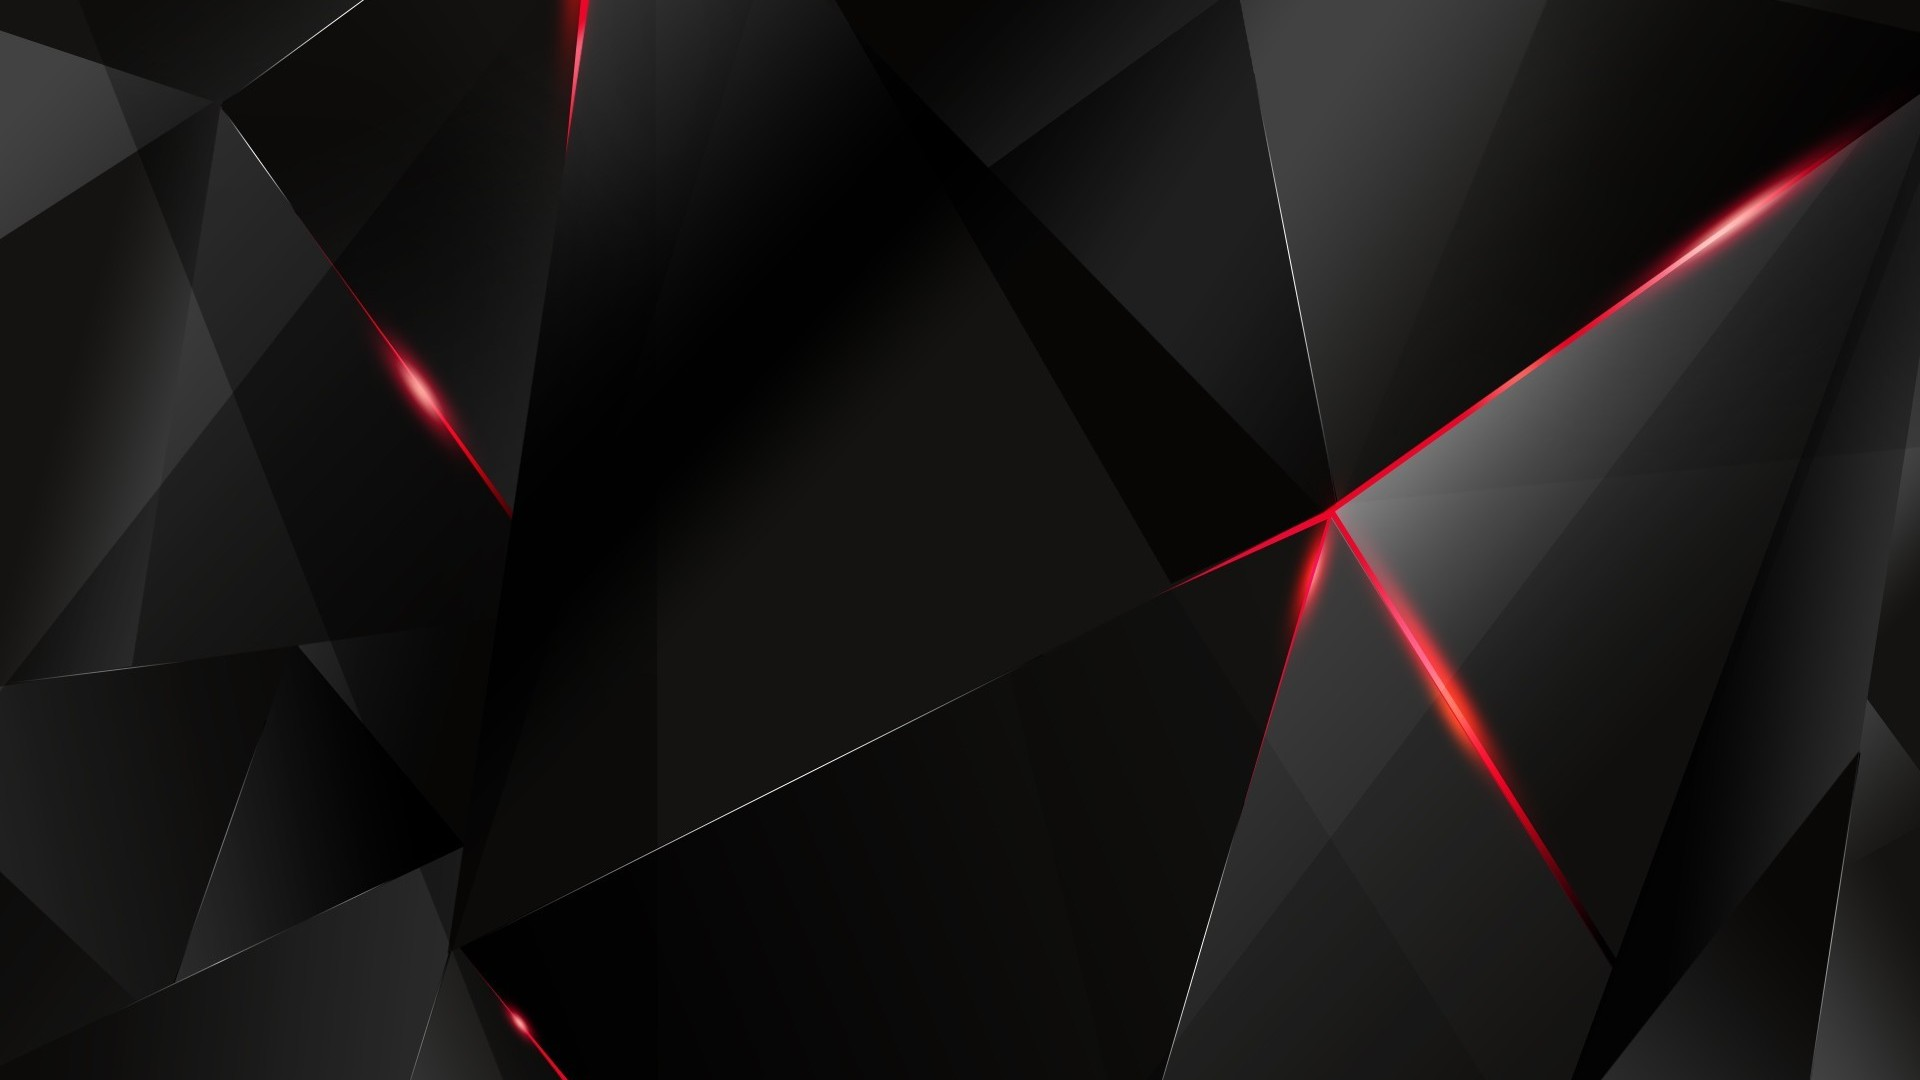 Black HD Wallpaper 1920x1080 - WallpaperSafari